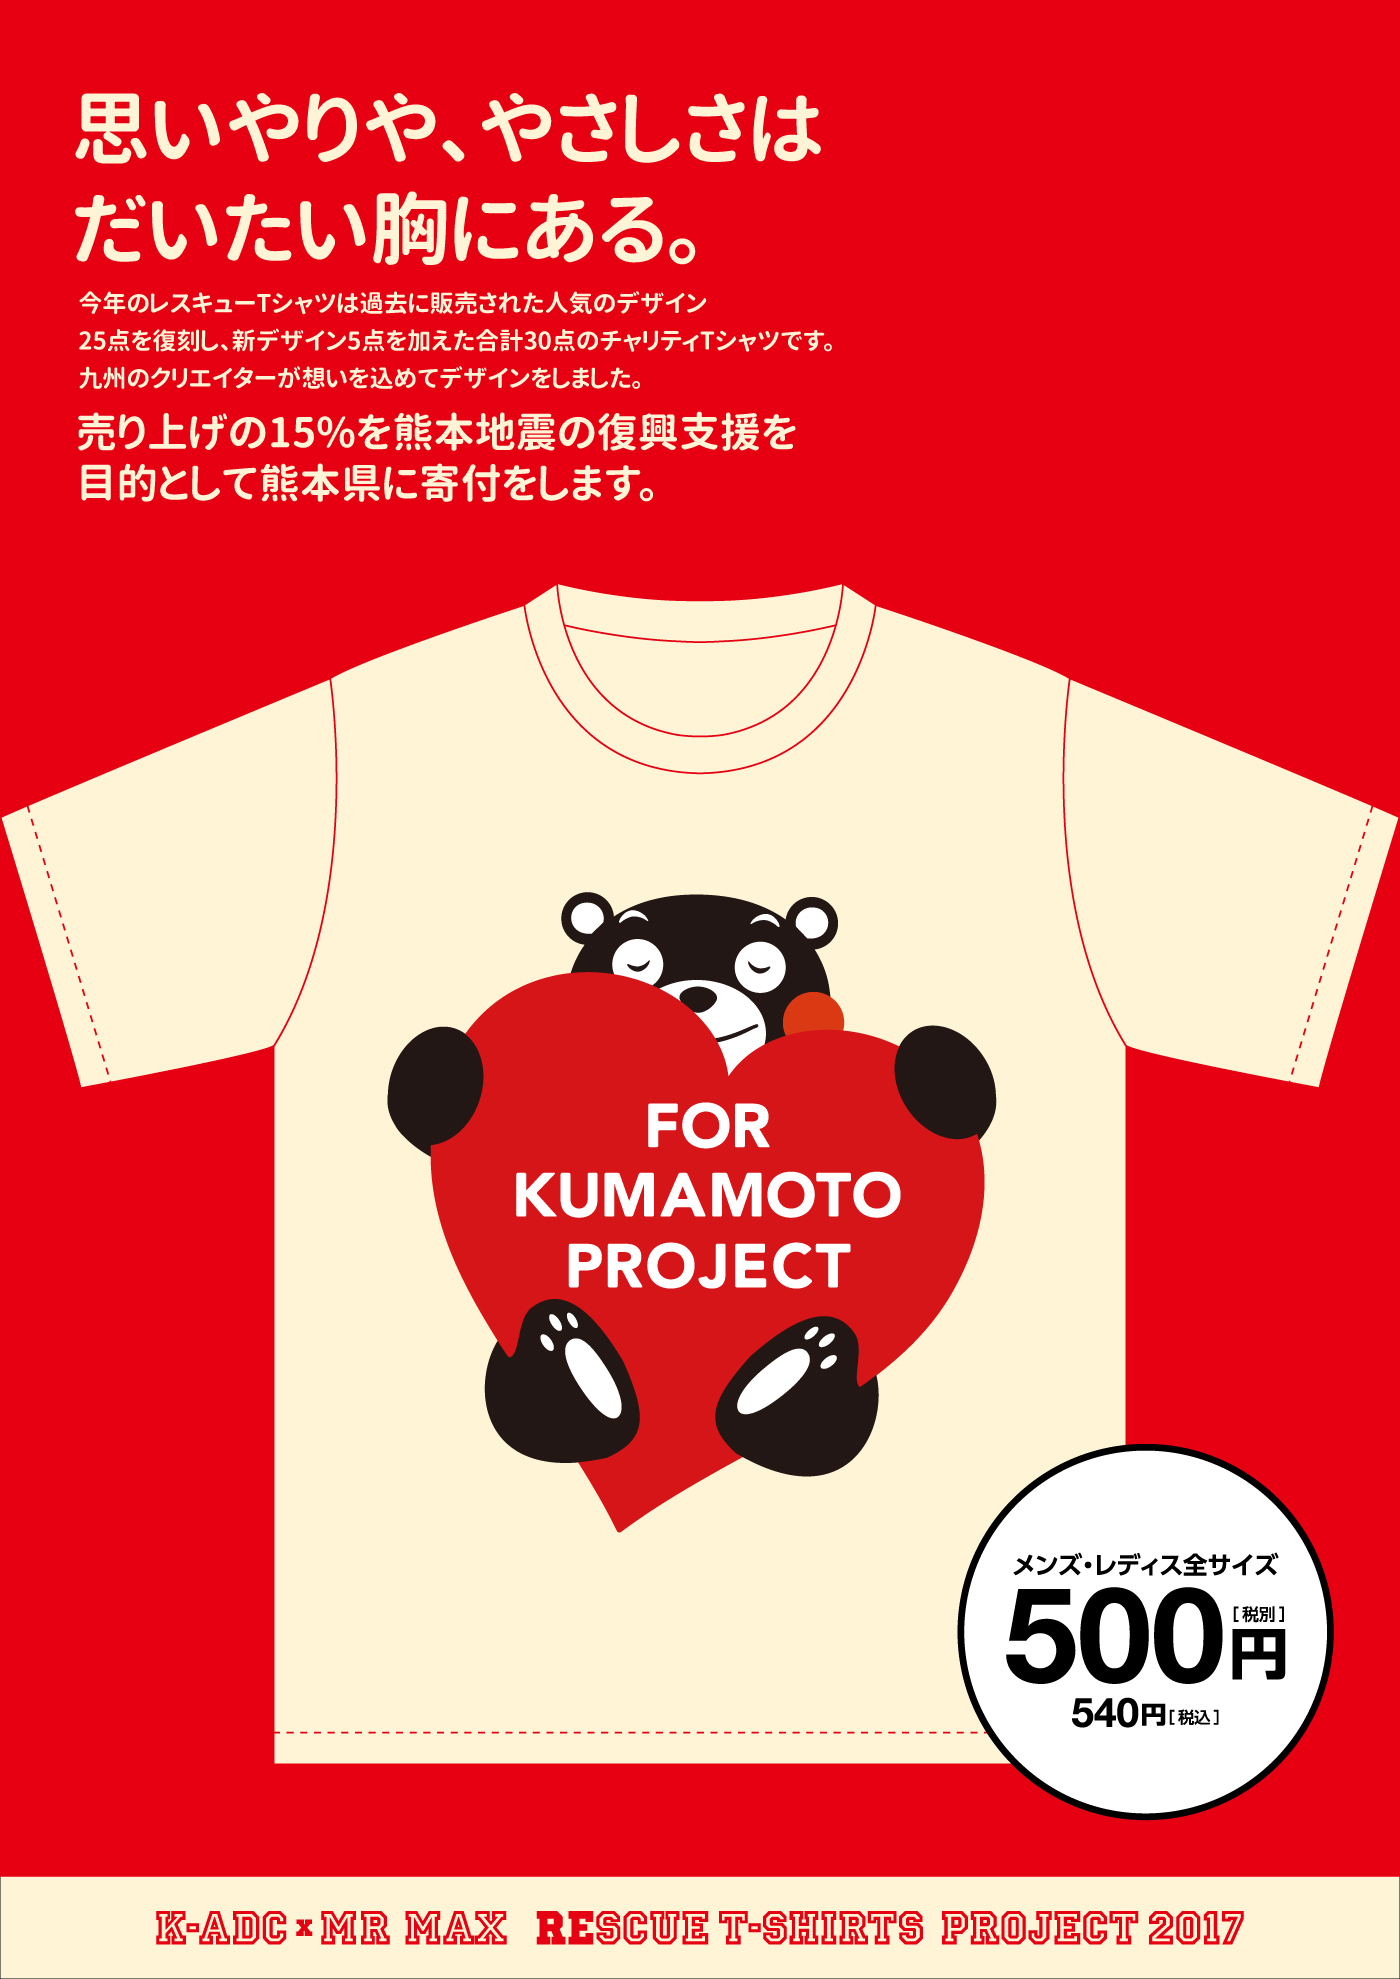 K-ADC RESCUE T-SHIRT PROJECT 2017